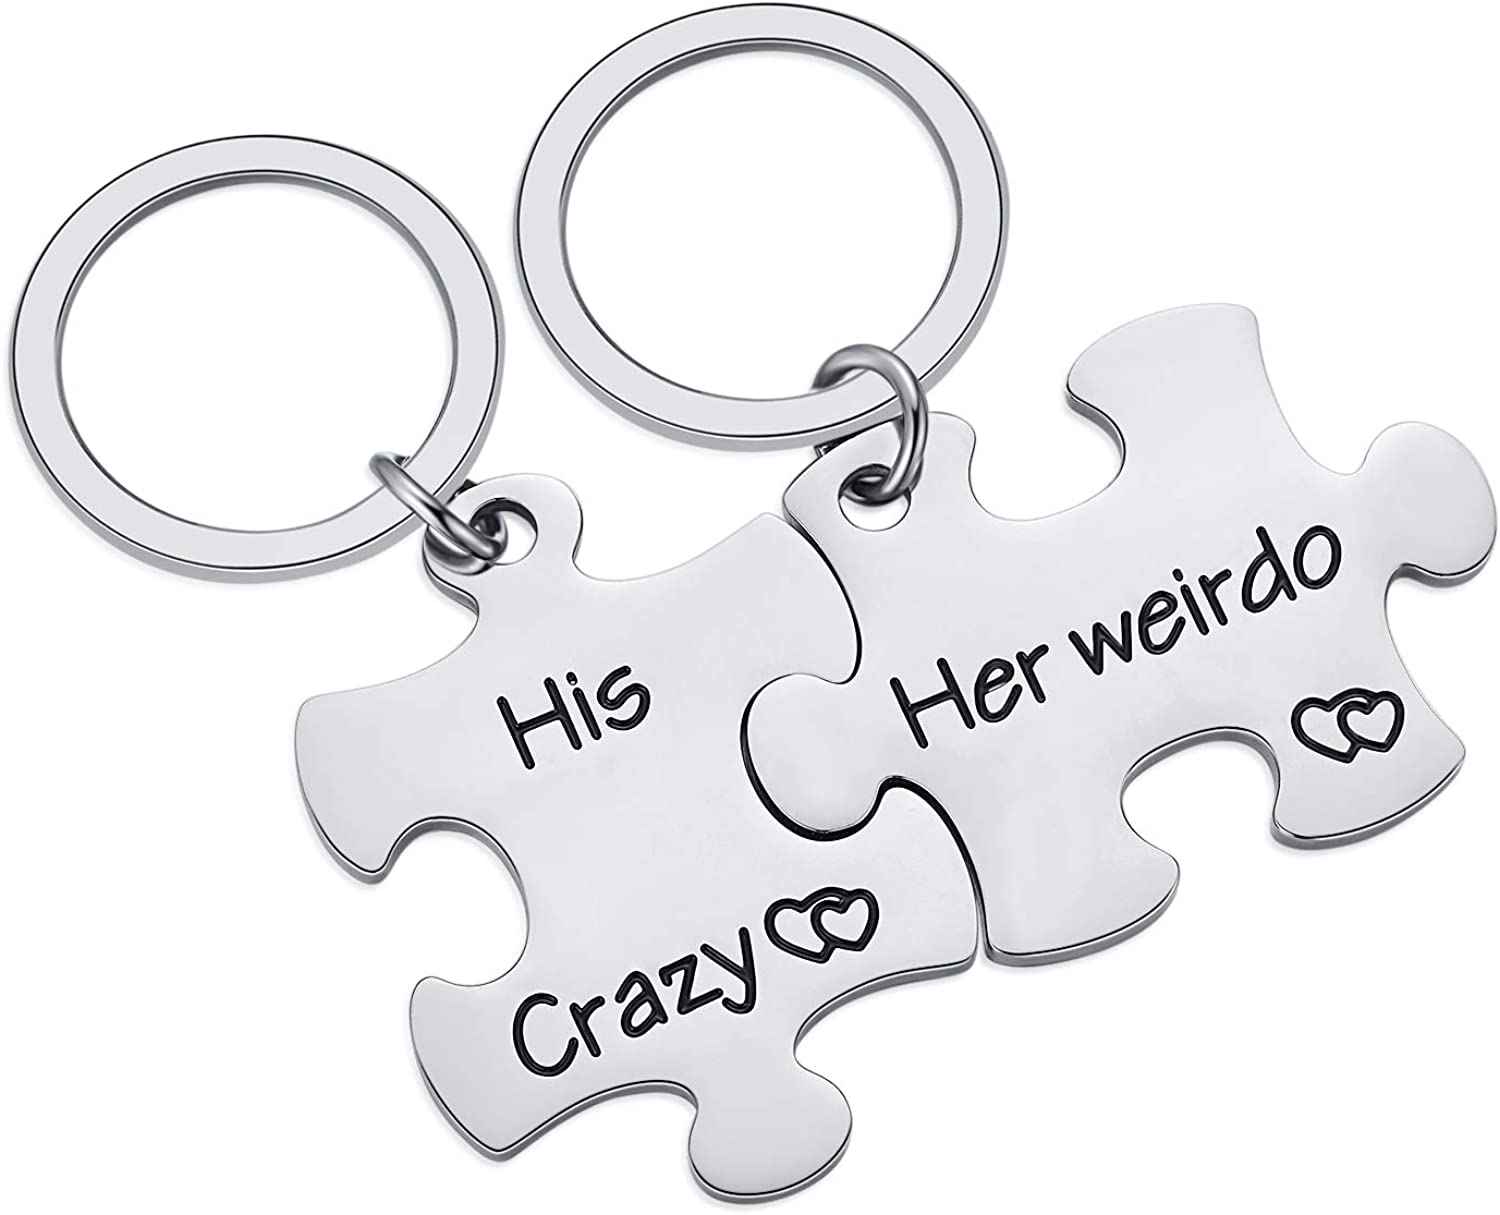 Valentine Day Keychain Set Gift for Boyfriend and Girlfriend, His Crazy Her Weirdo Couple Key Chain for Thanksgiving Day Wedding, Stainless Steel Lover Jewelry Gifts